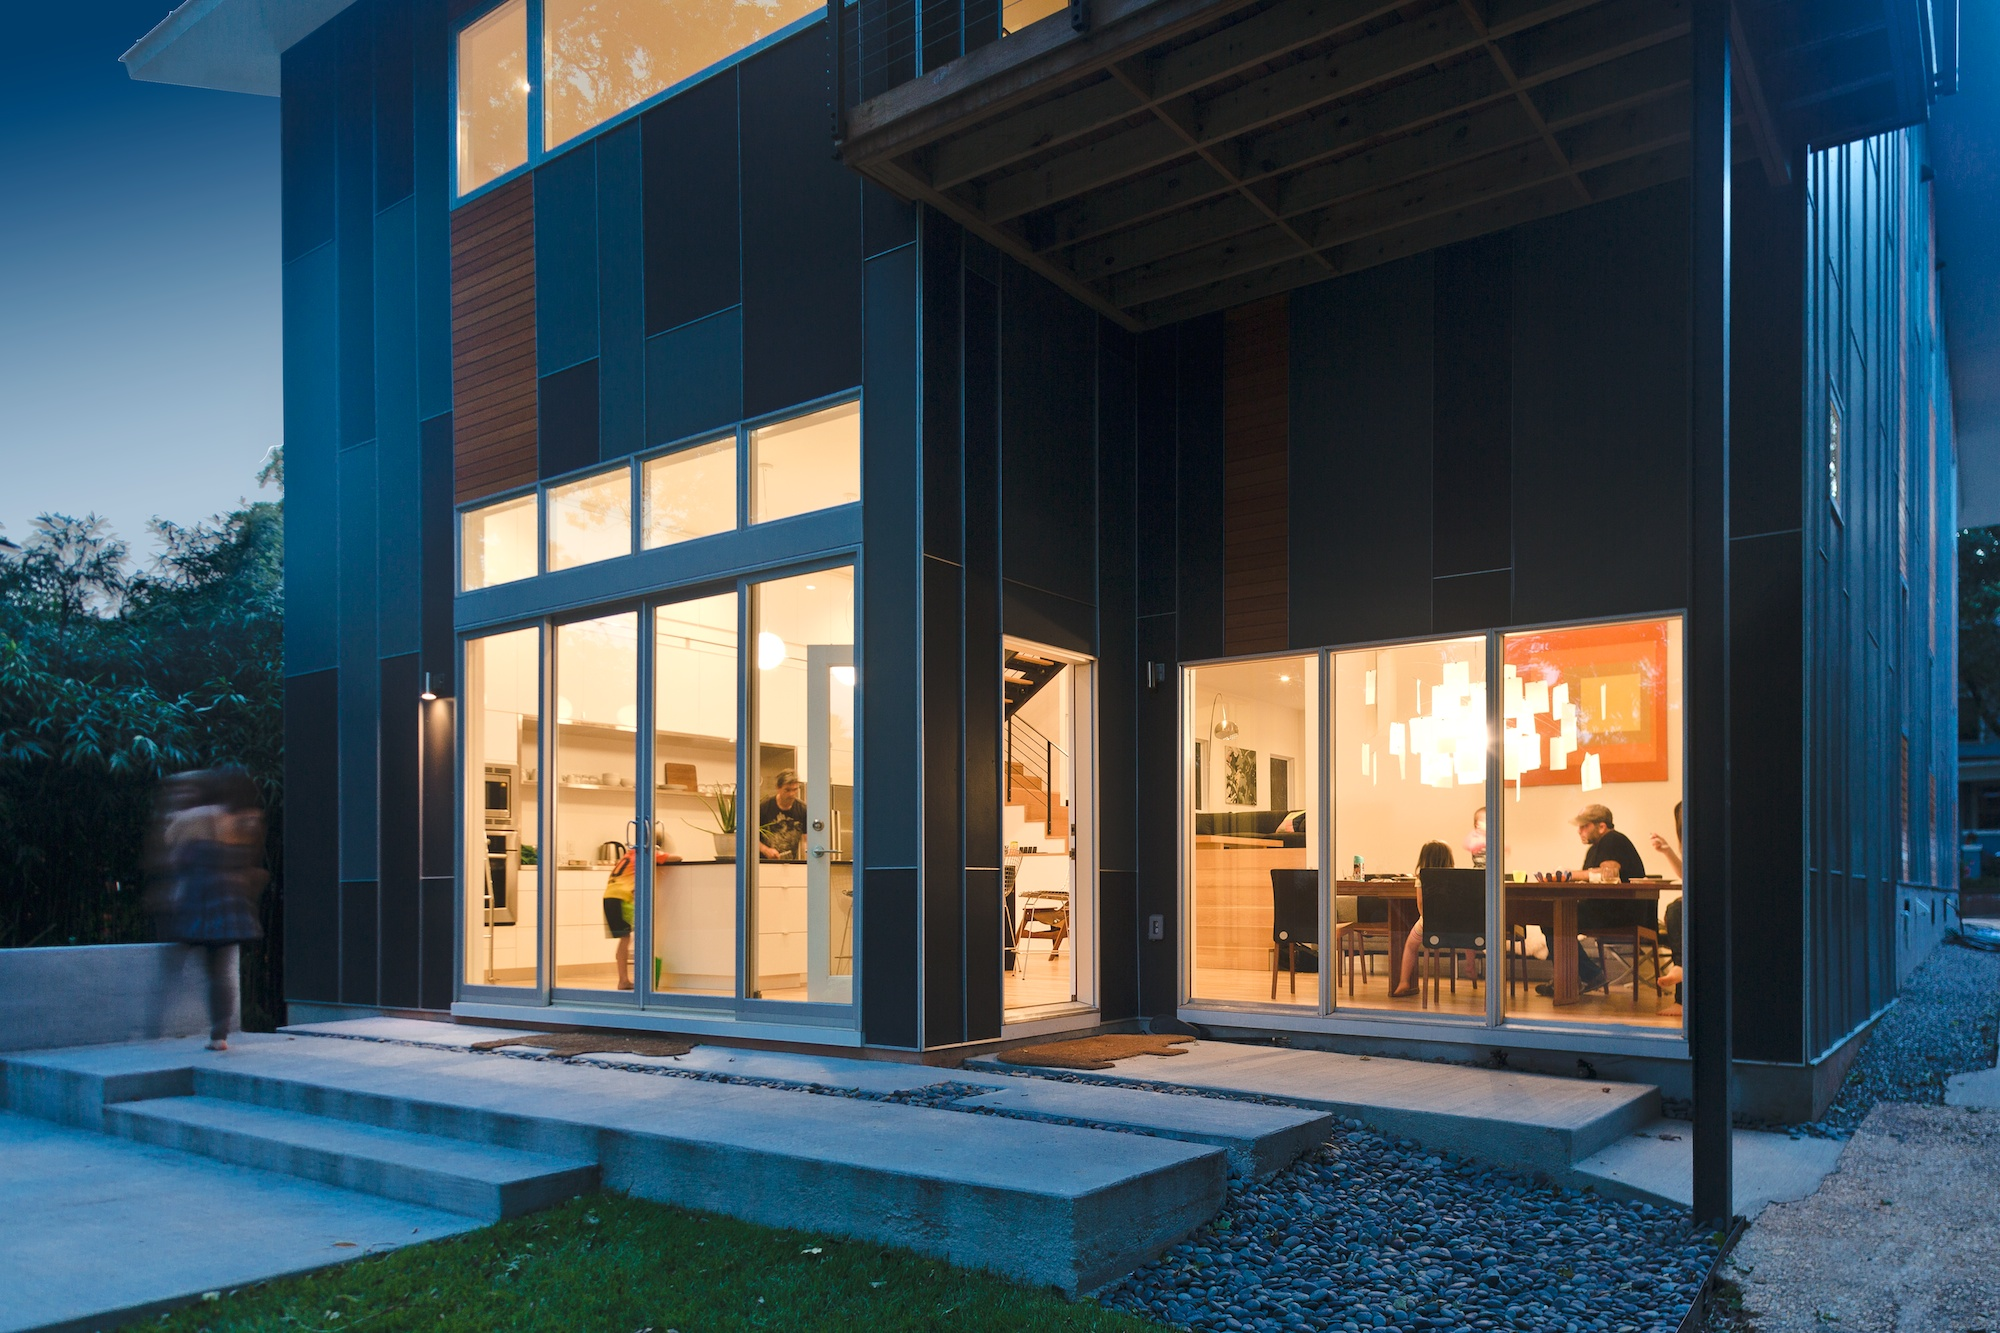 Hawthorne Residence Kitchen and Dining: featured in DWELL Magazine 'Your Rooms We Love' issue